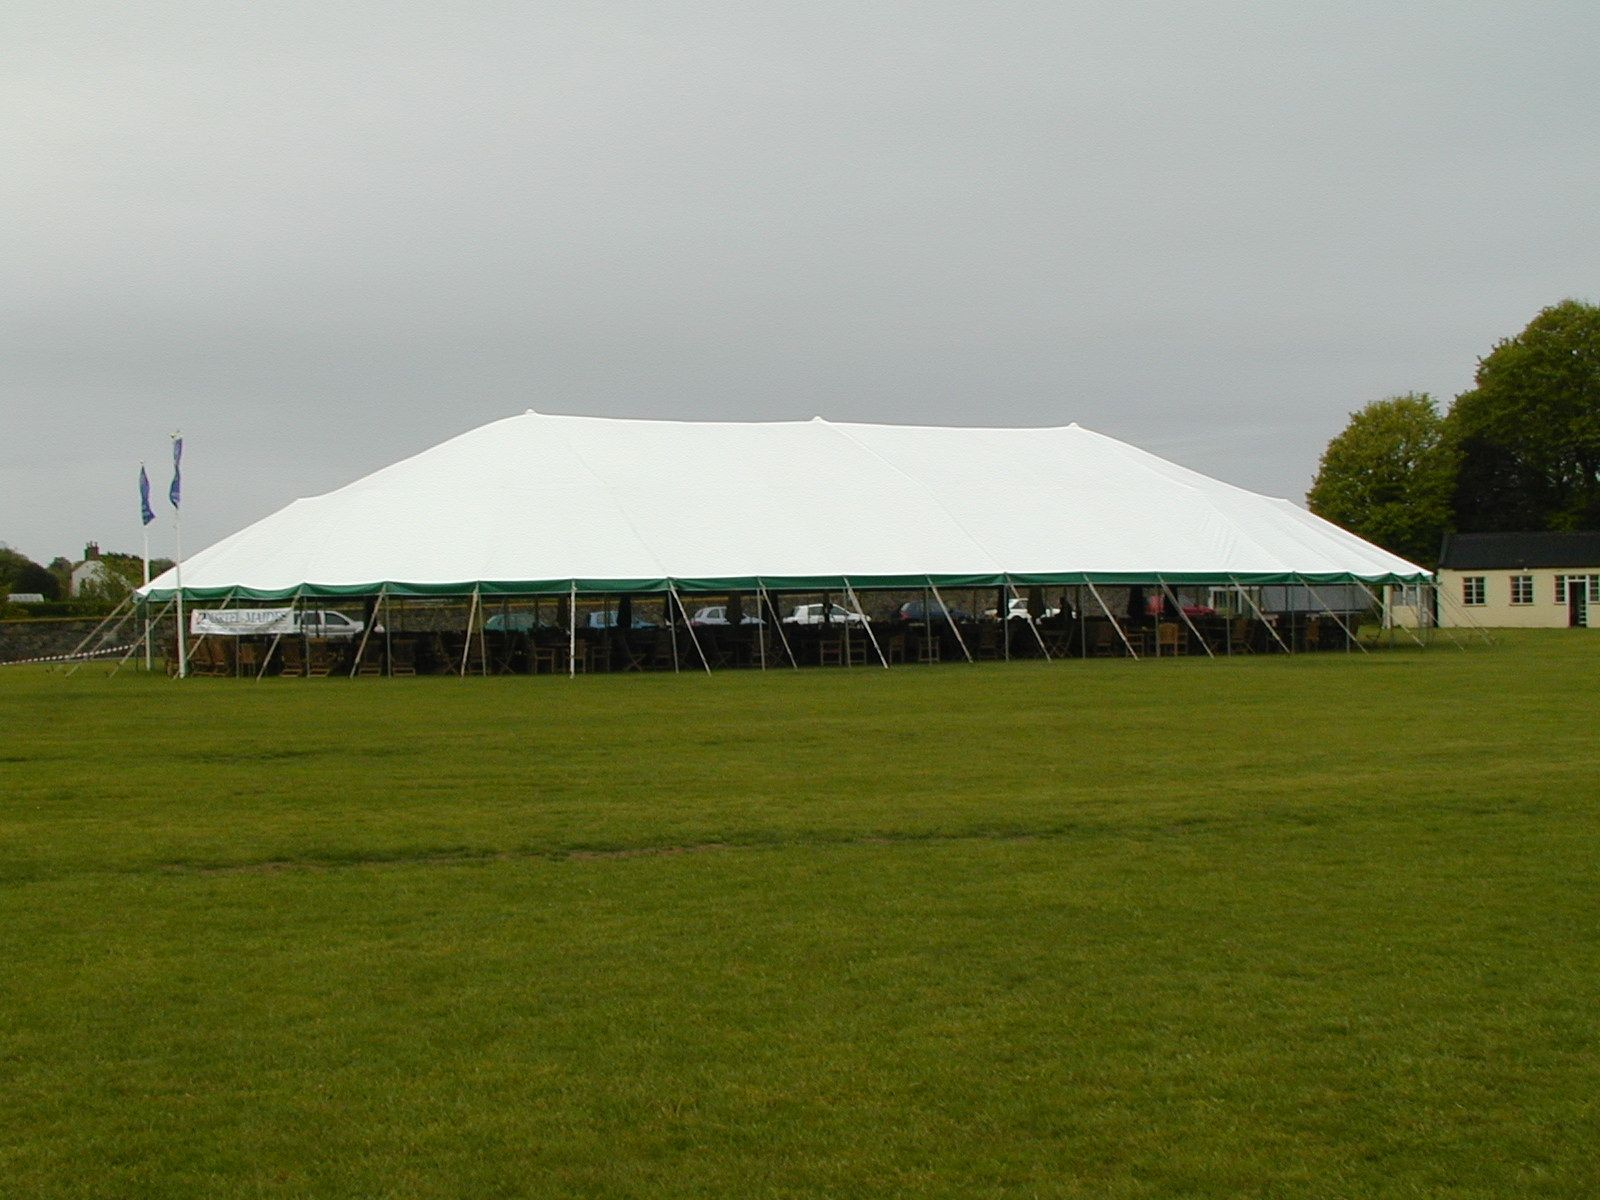 14oz 76u0027 x 136u0027 oval pole tent for church building. & 14oz 76u0027 x 136u0027 oval pole tent for church building. | Tents for ...